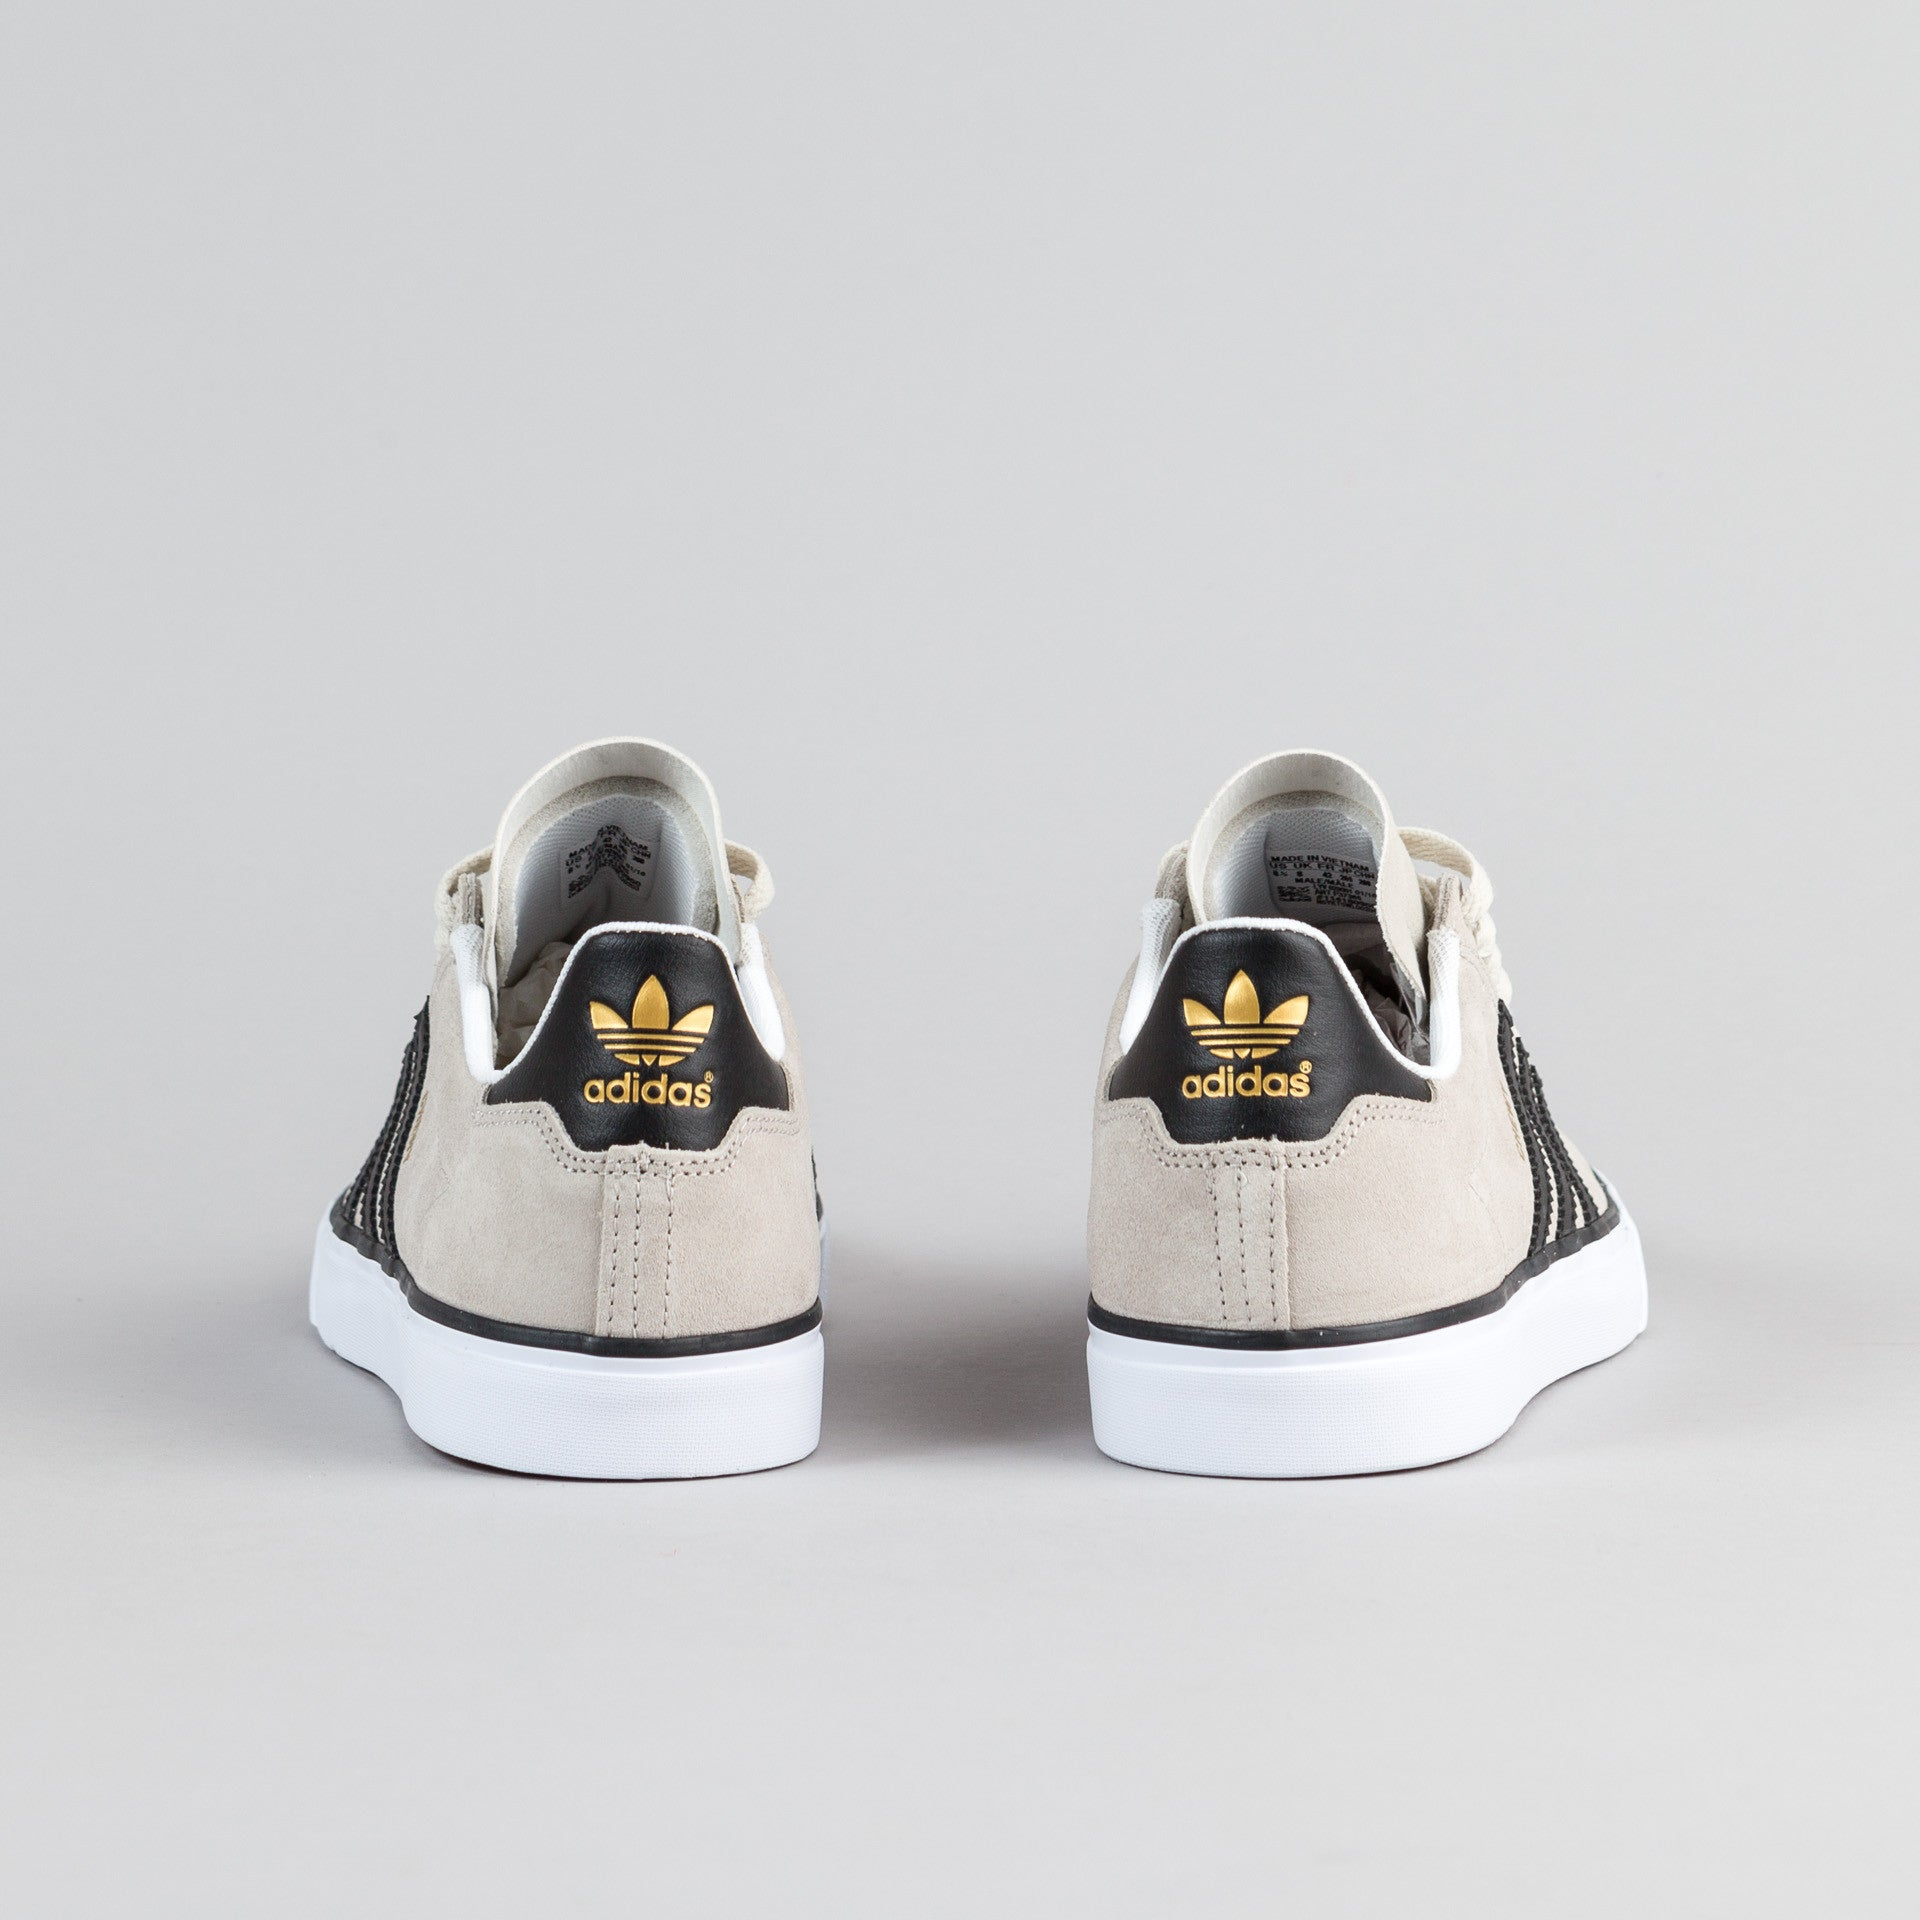 "Adidas Campus Vulc 2.0 ""Chewy"" Shoes - Mist Stone / Core Black / Gold Metallic"